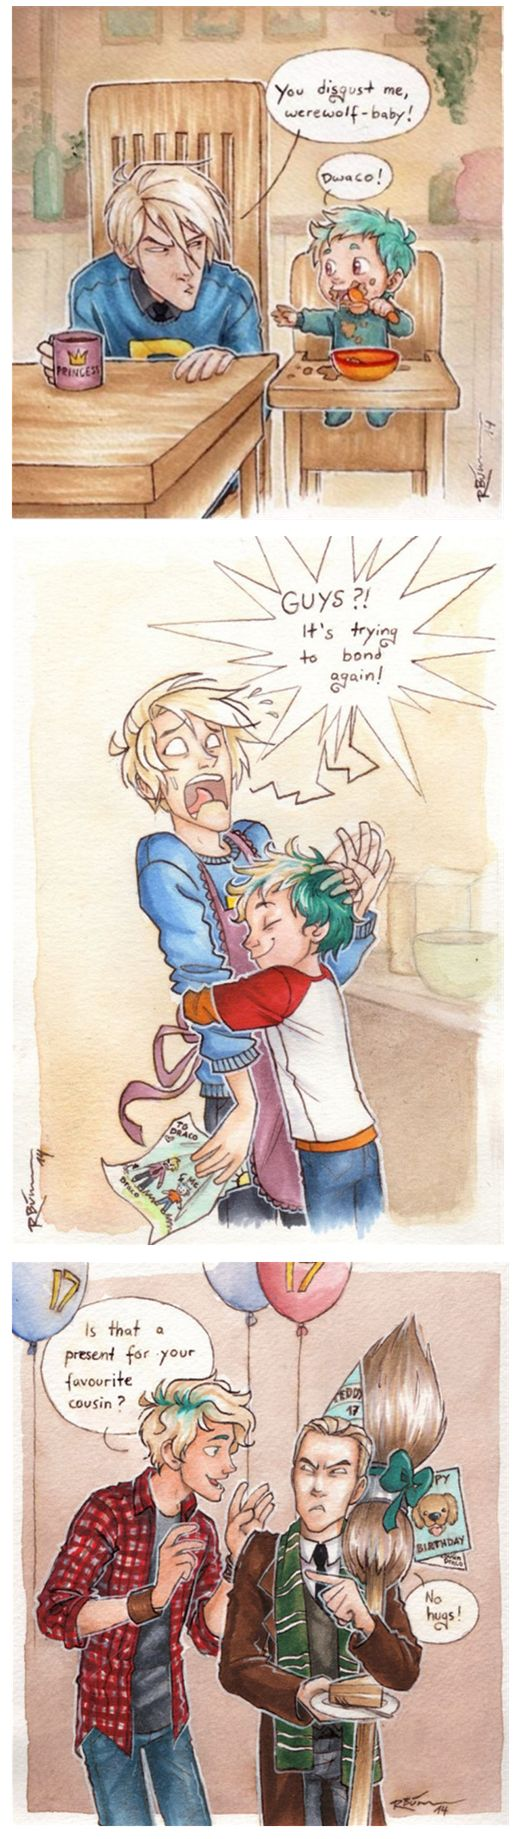 Draco and Teddy (Draco wears a Weasley sweater! and has a princess mug!) ... draco malfidus, harry potter, teddy lupin, draco, malfidus, teddy, lupin